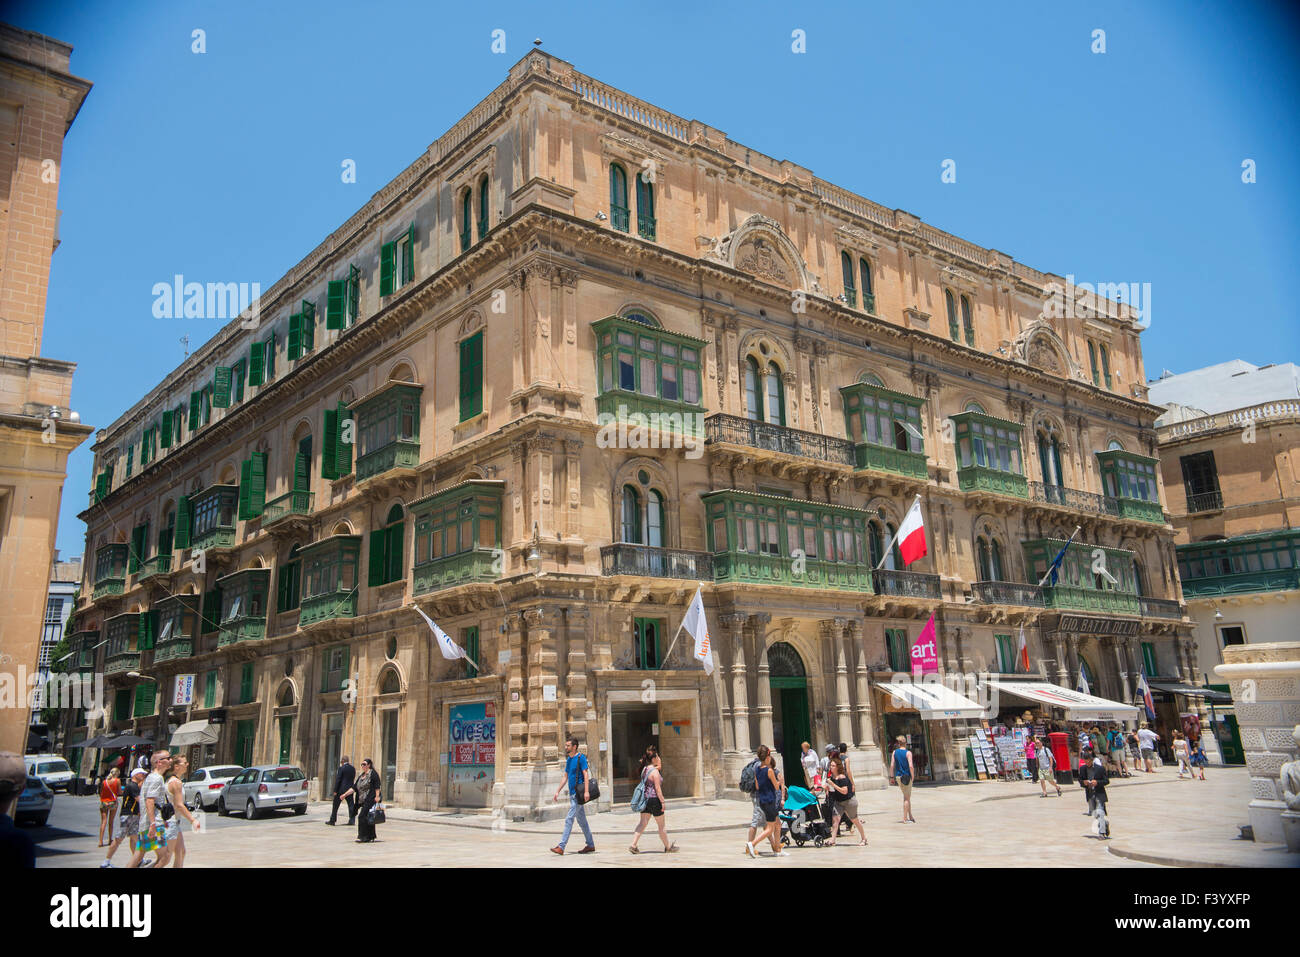 Palazzo Ferreria Valletta retail shops and fast food outlets in a once grand palace. - Stock Image